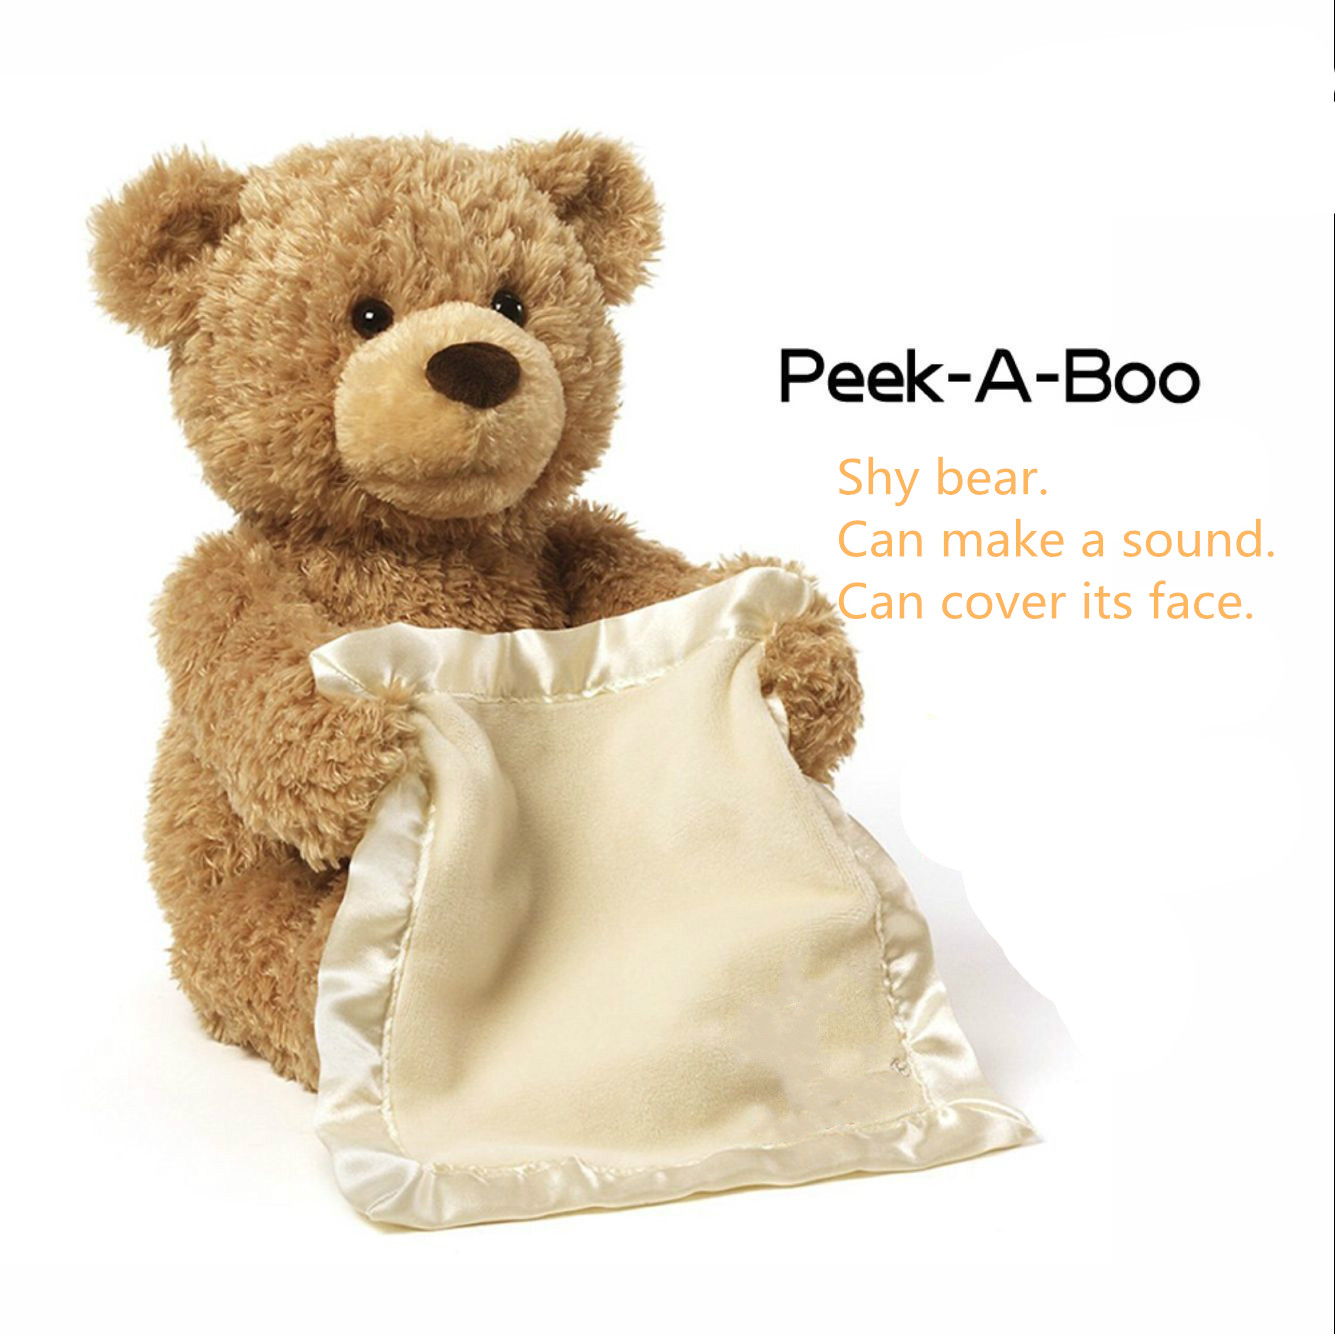 2020 New Style Hot Selling American Peekaboo Bear Talking Will Move The Teddy Bear Electric Voice Over Face Shy Bear Plush Toy